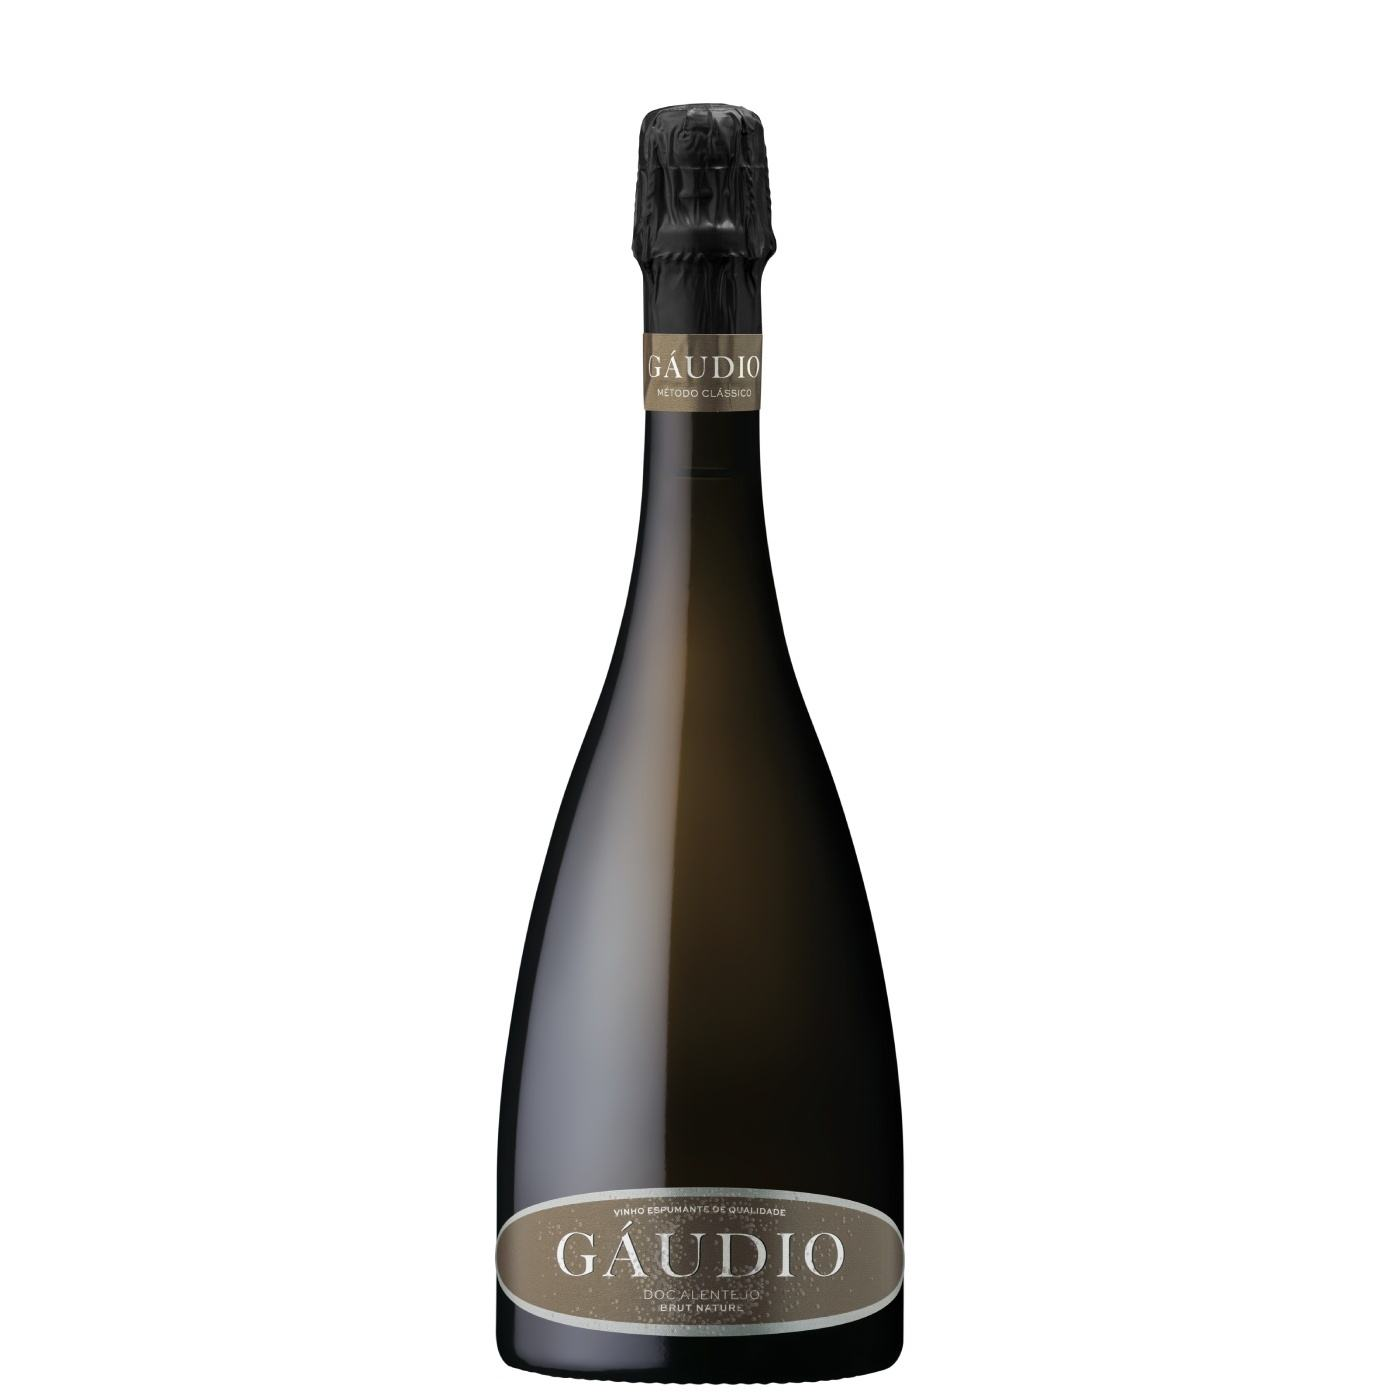 Gaudio Brut Nature White, dry sparkling wine from Portugal of great elegance with fine and persistent bubble, DOC Alentejo